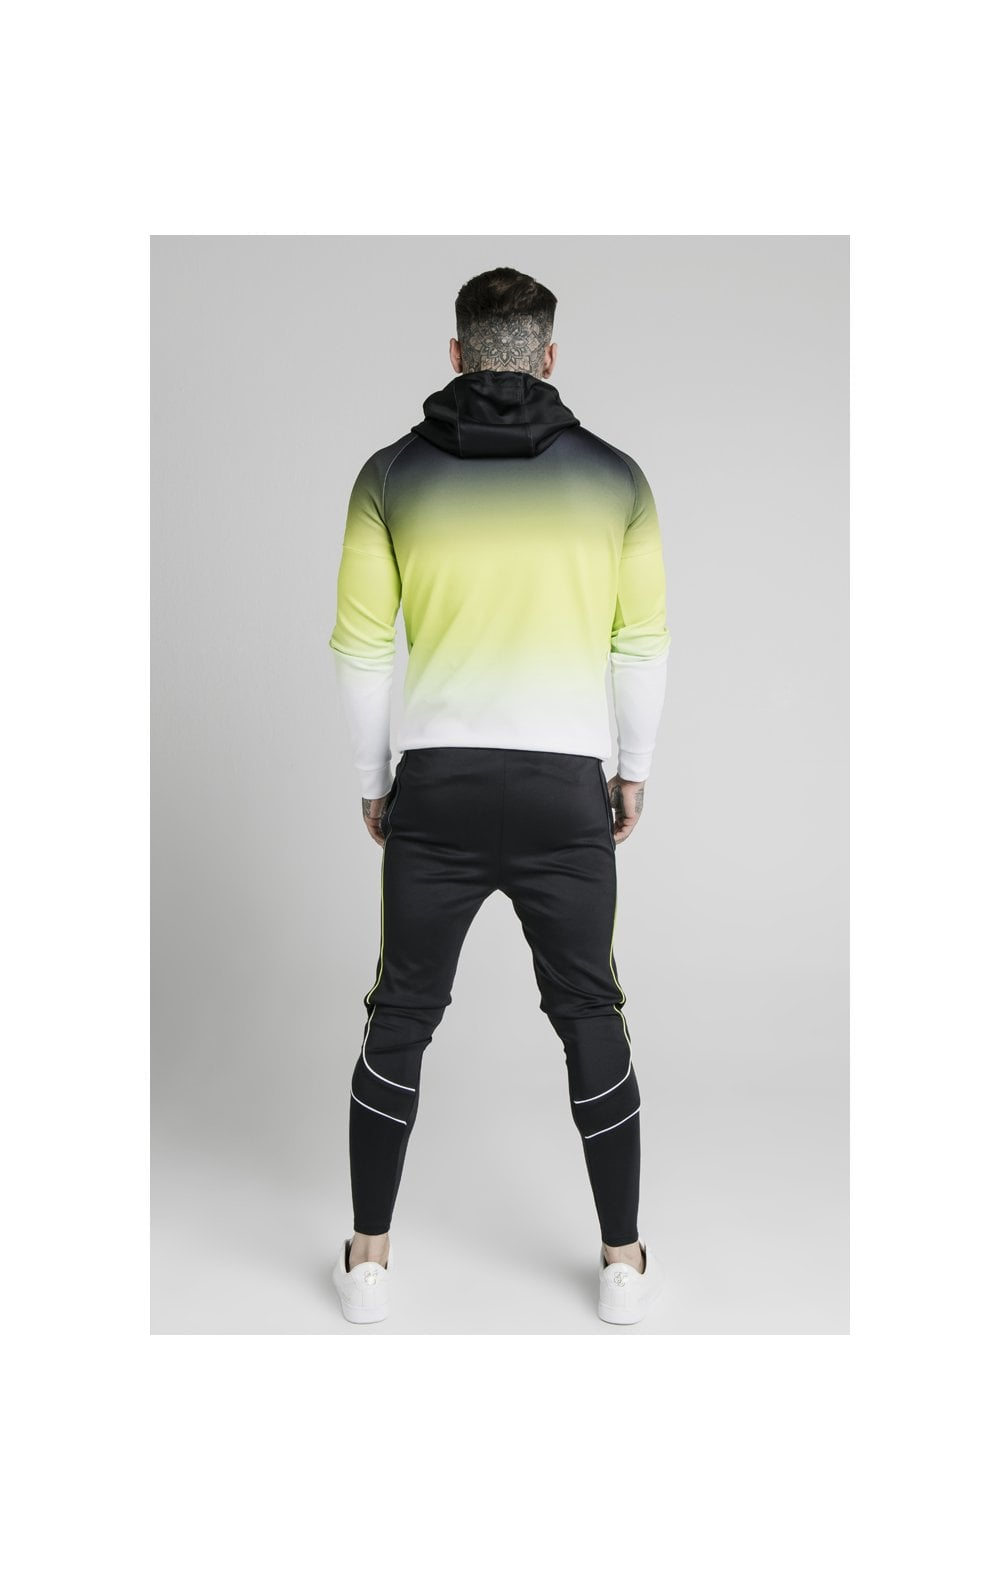 Load image into Gallery viewer, SikSilk Vapour Tri-Fade Overhead Hoodie - Black, Fluro & White (4)